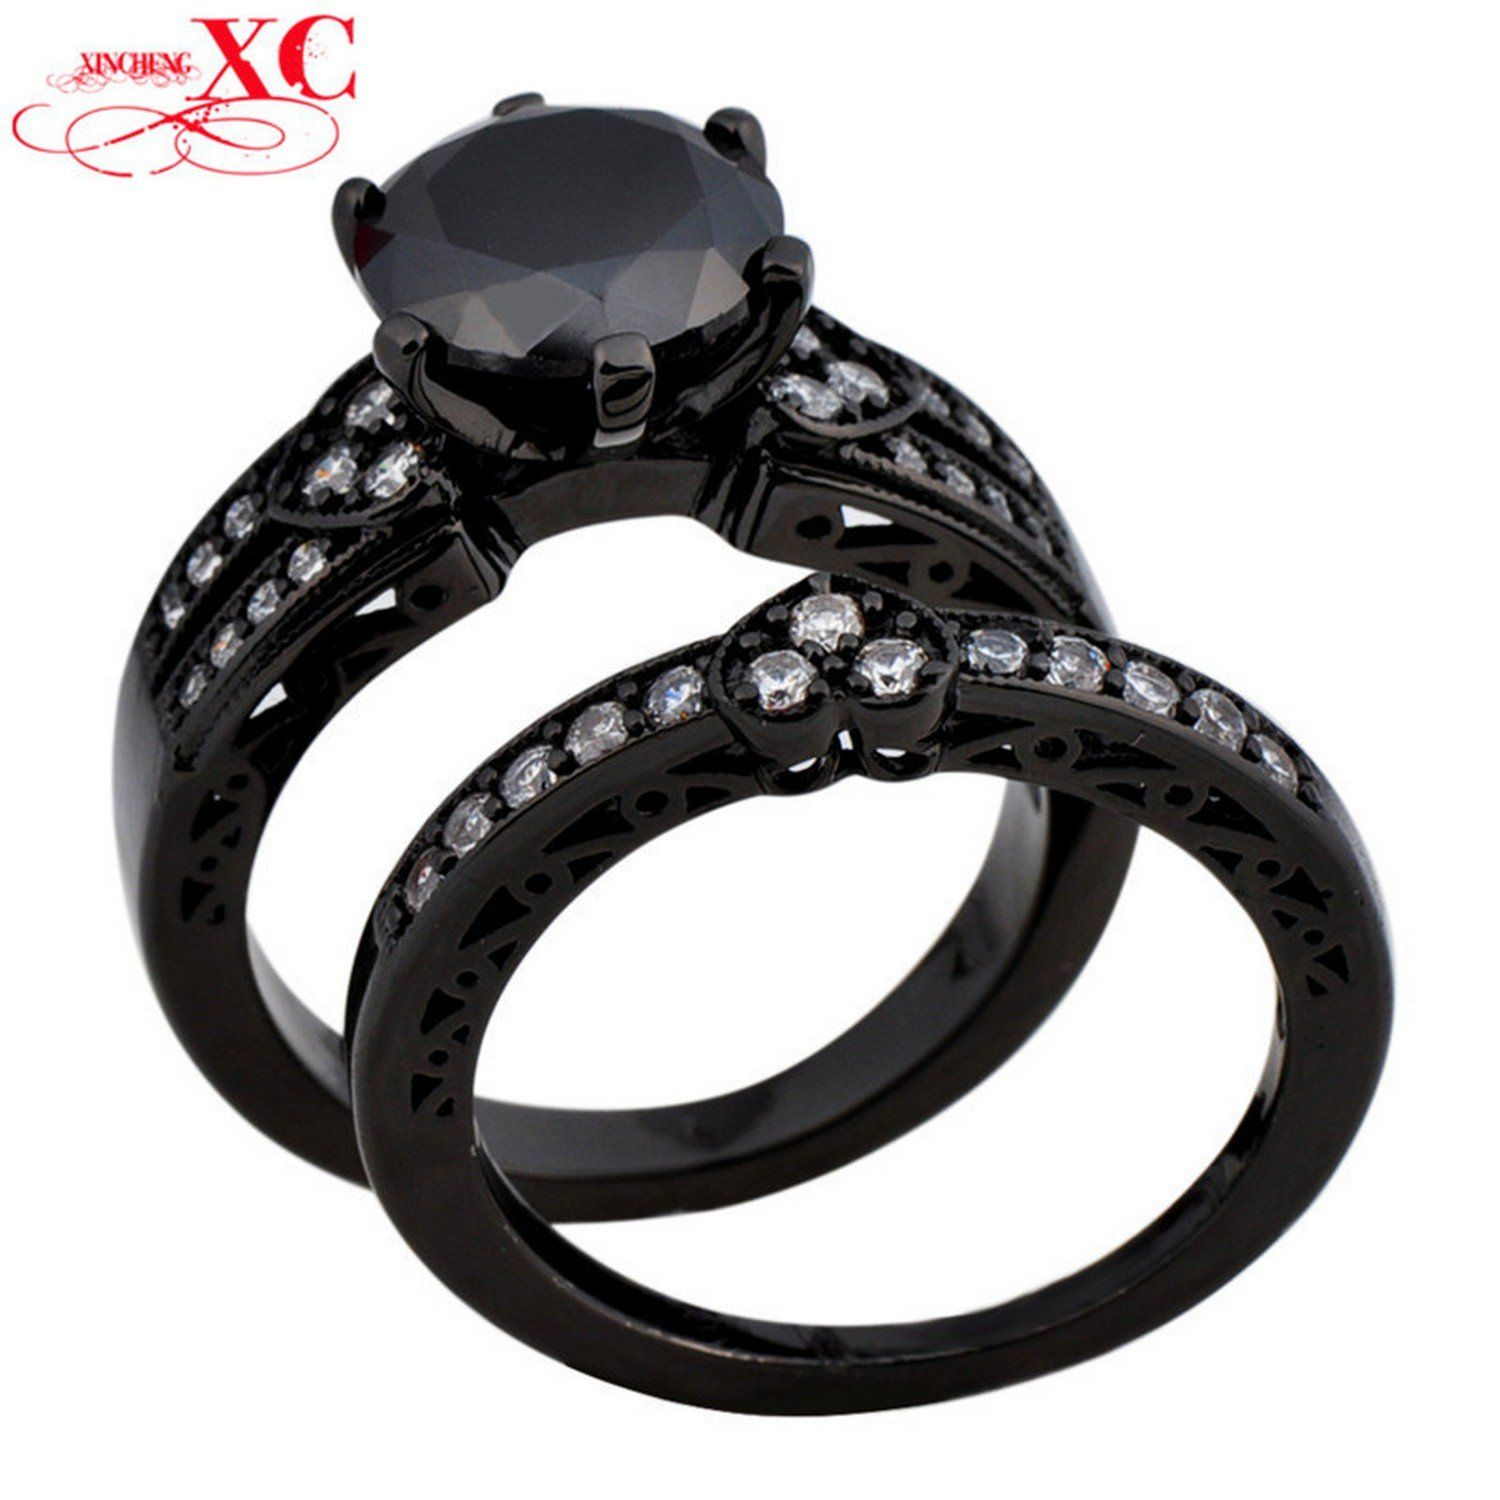 Dudee Jewelry Double Ring Wedding Finger Ring LZircon T Black Gold